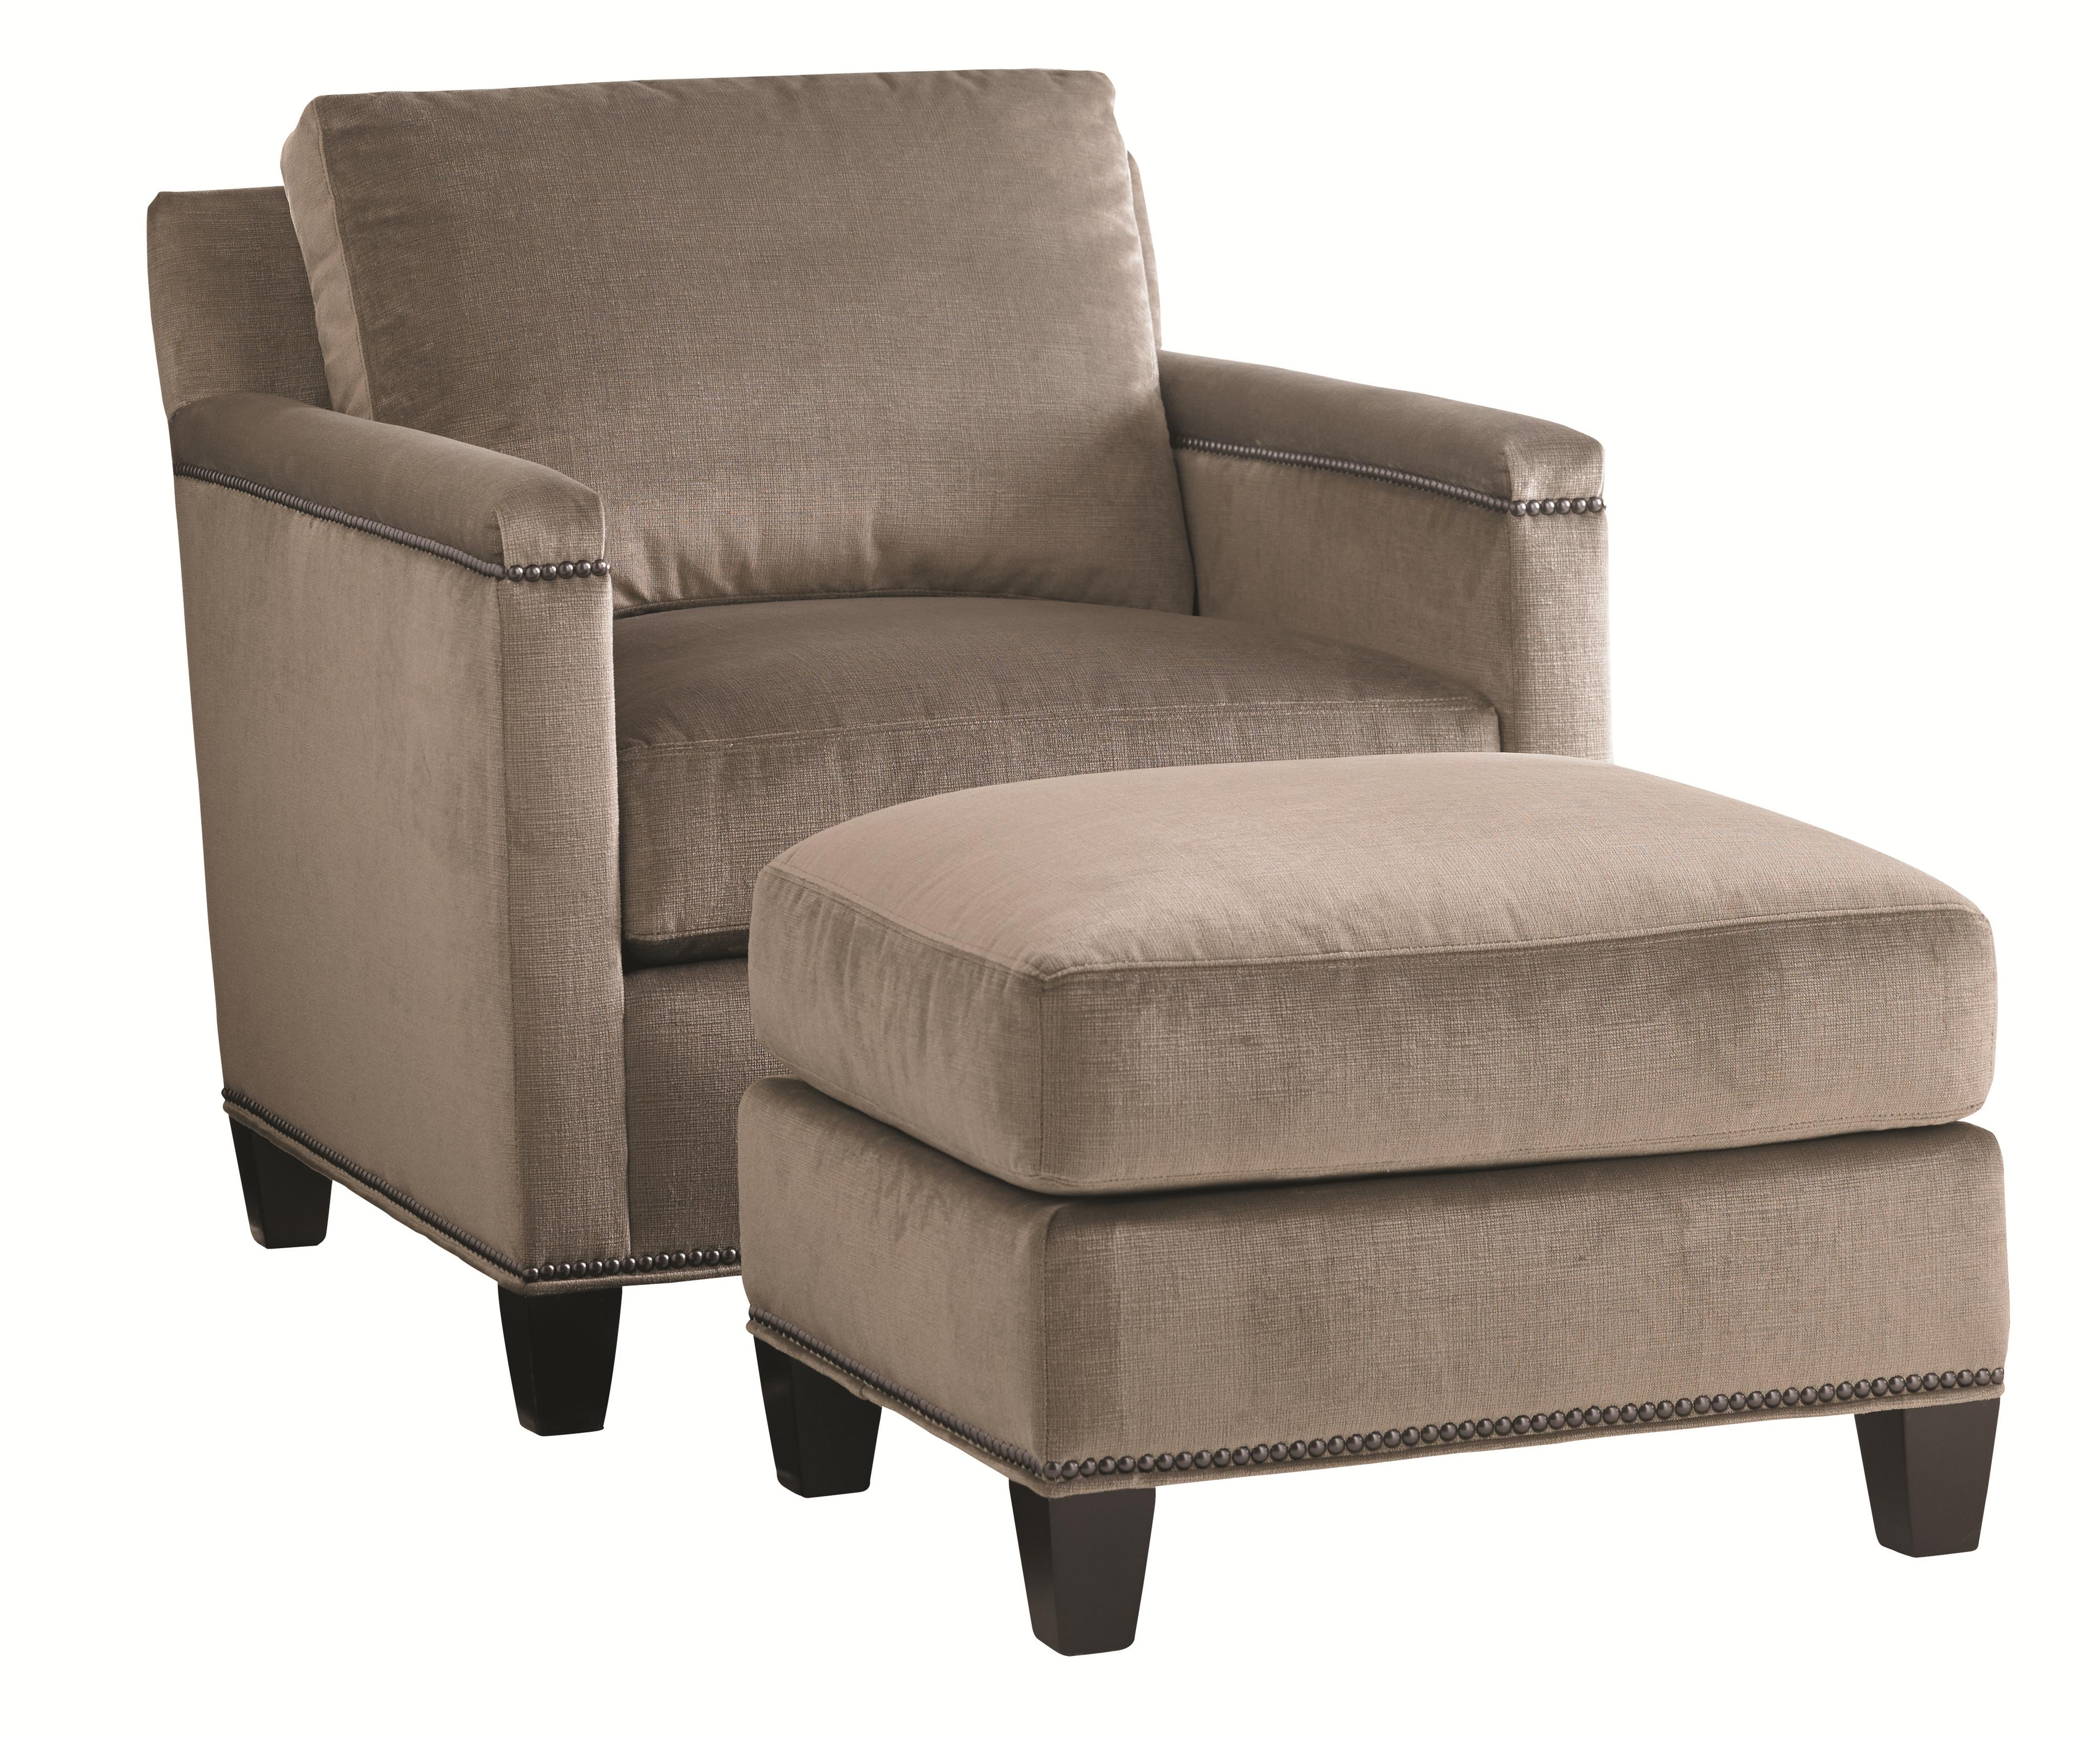 Carrera Stationary Chair and Ottoman Set by Lexington at Baer's Furniture